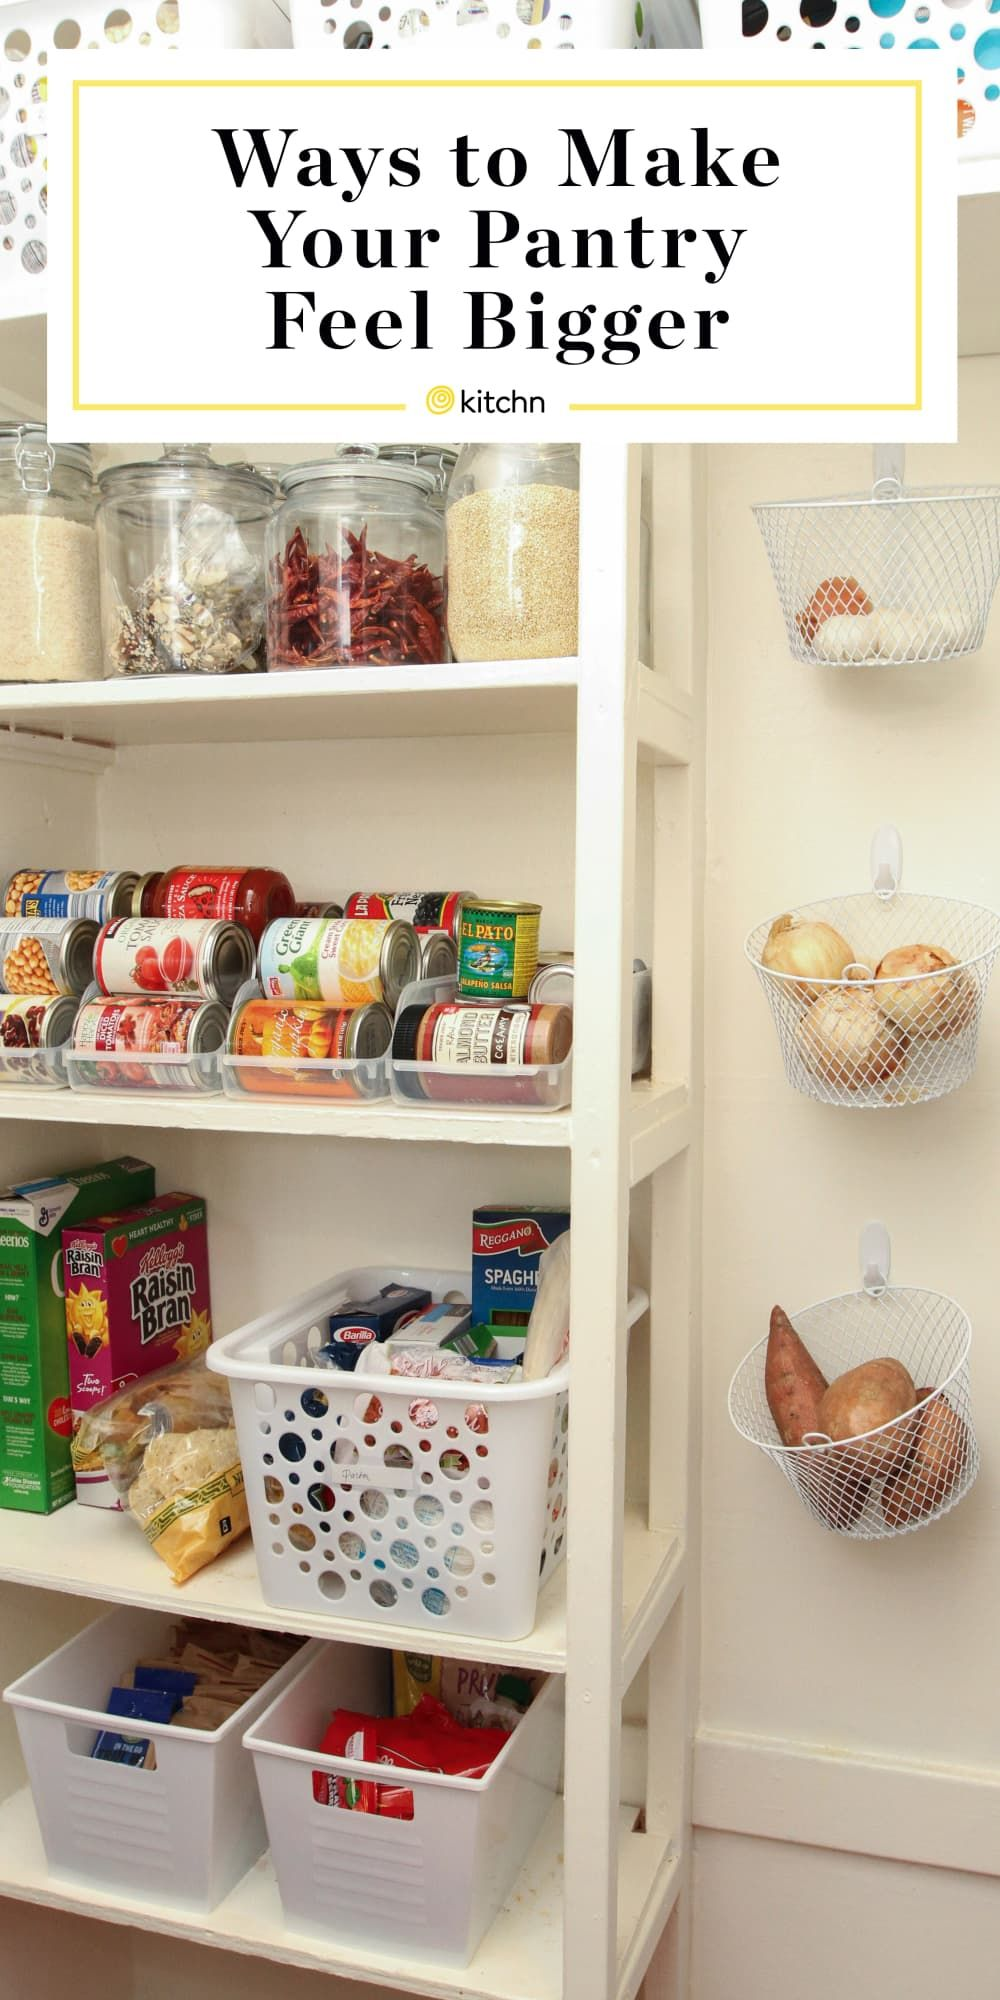 5 Brilliant Little Ways To Make Your Pantry Any Pantry Feel Bigger Than It Is Pantry Organization Dollar Store Diy Pantry Organization Small Pantry Organization